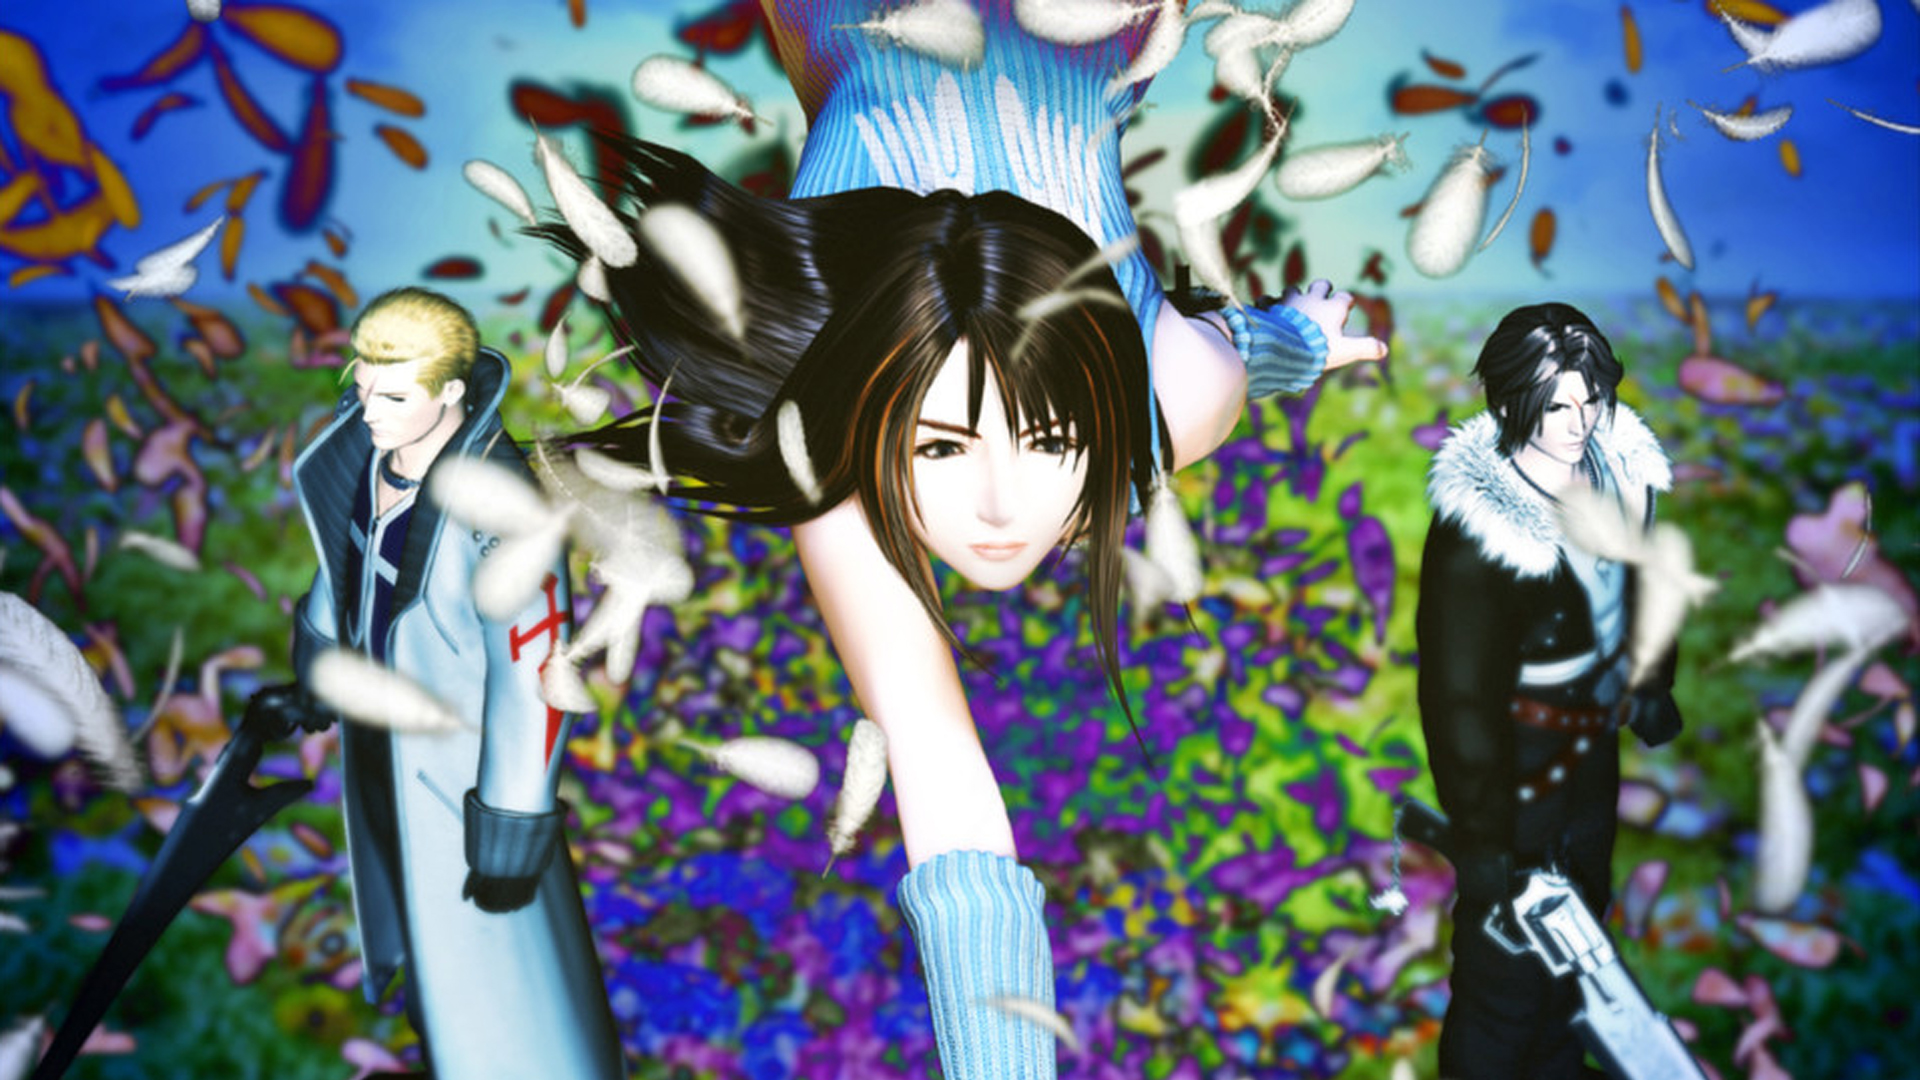 Final Fantasy Viii Remastered Will Release Next Month Pcgamesn